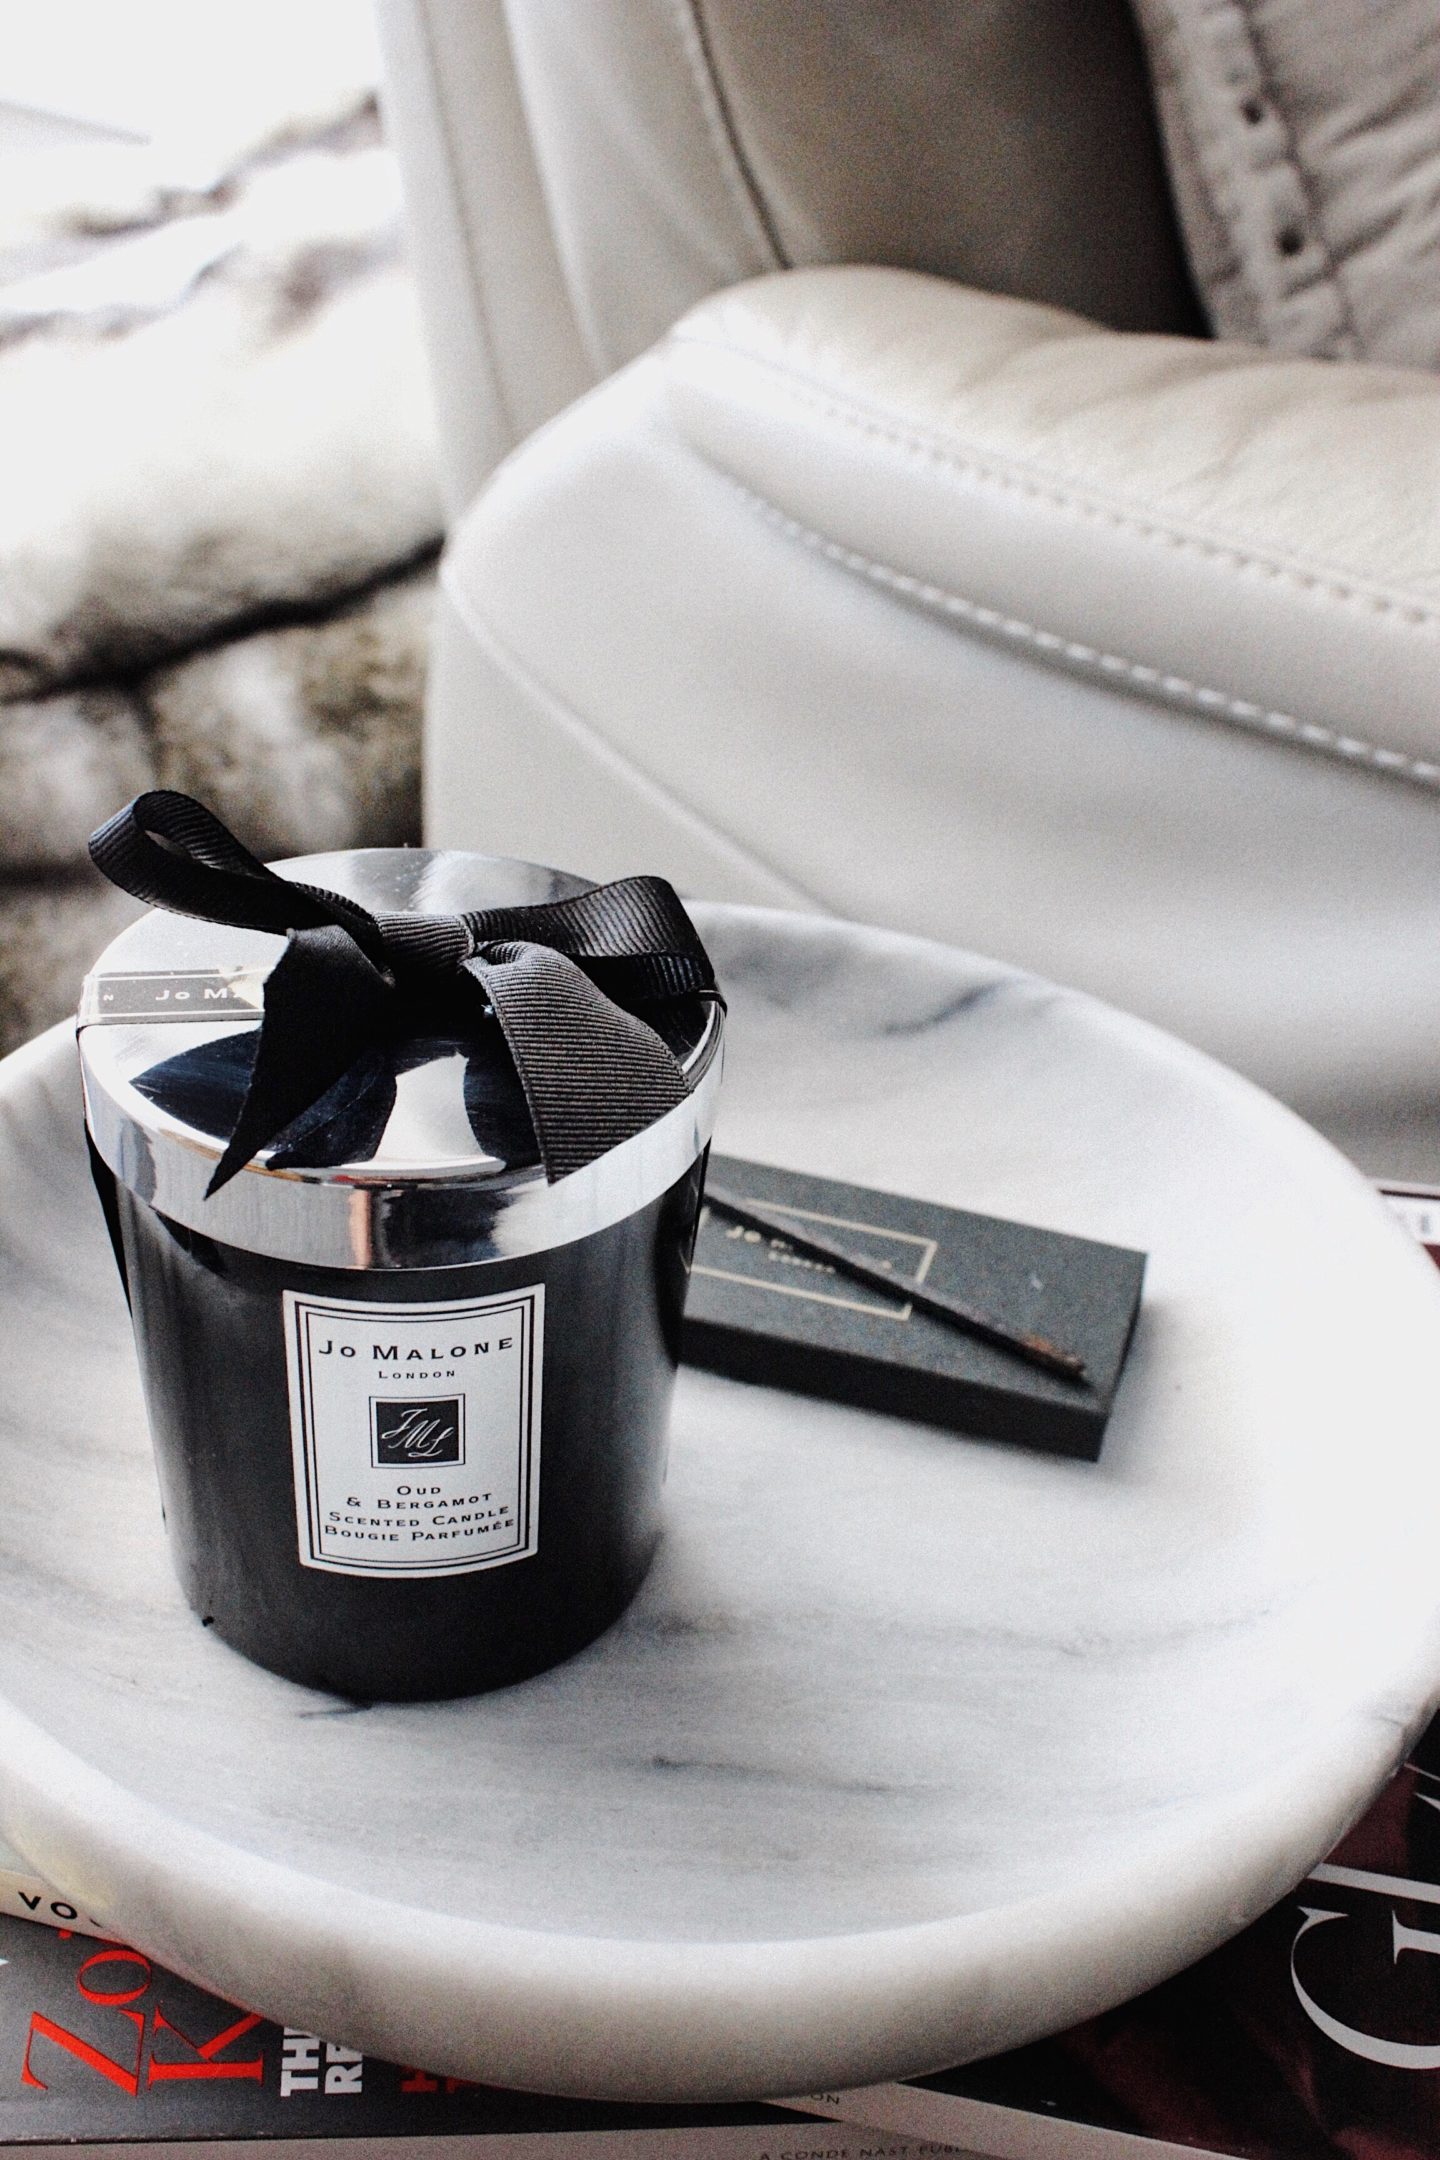 Jo Malone Out and Bergamot Candle on Marble Bowl